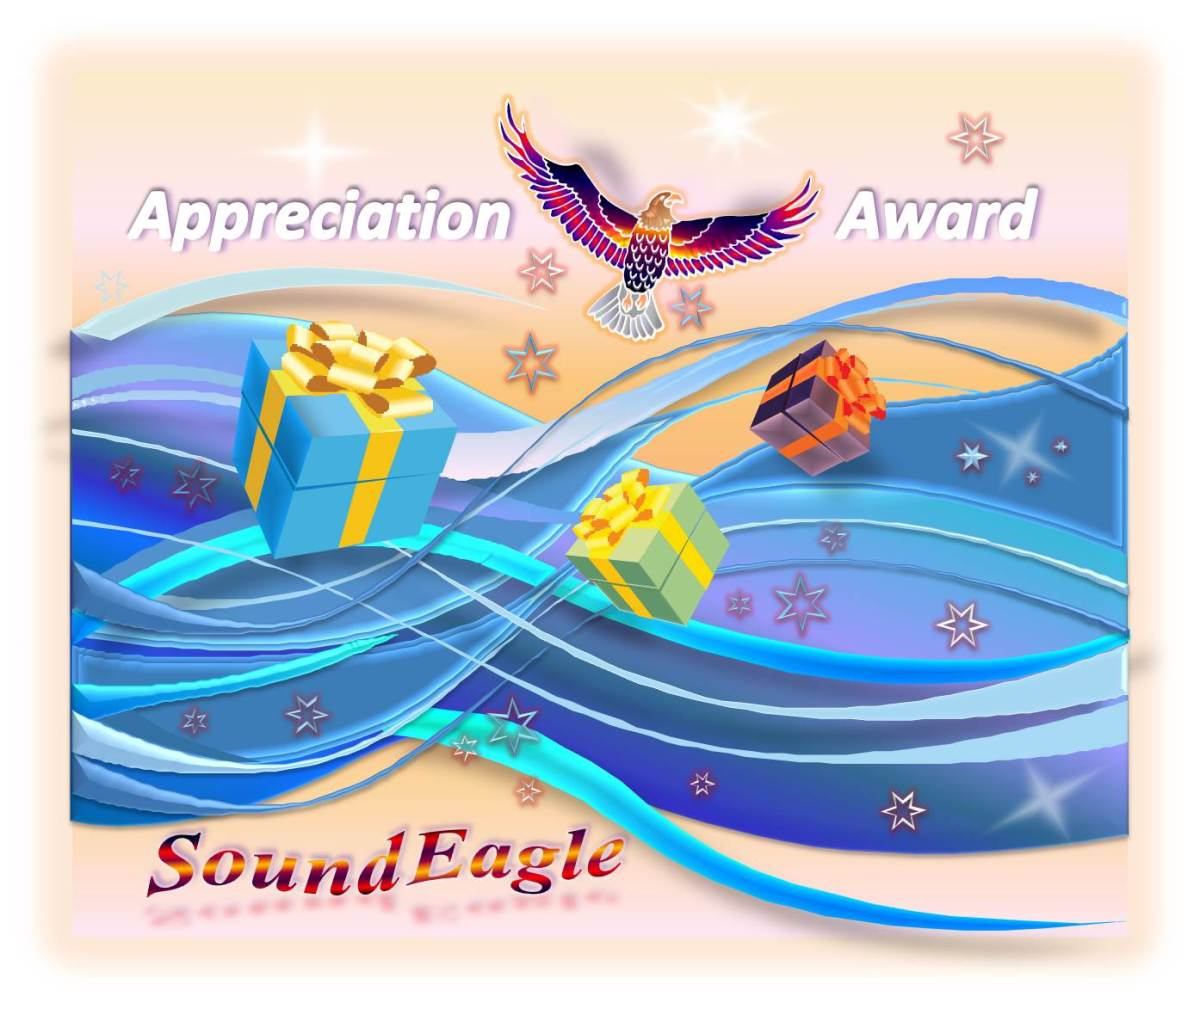 🦅 SoundEagle Appreciation Award 🎖